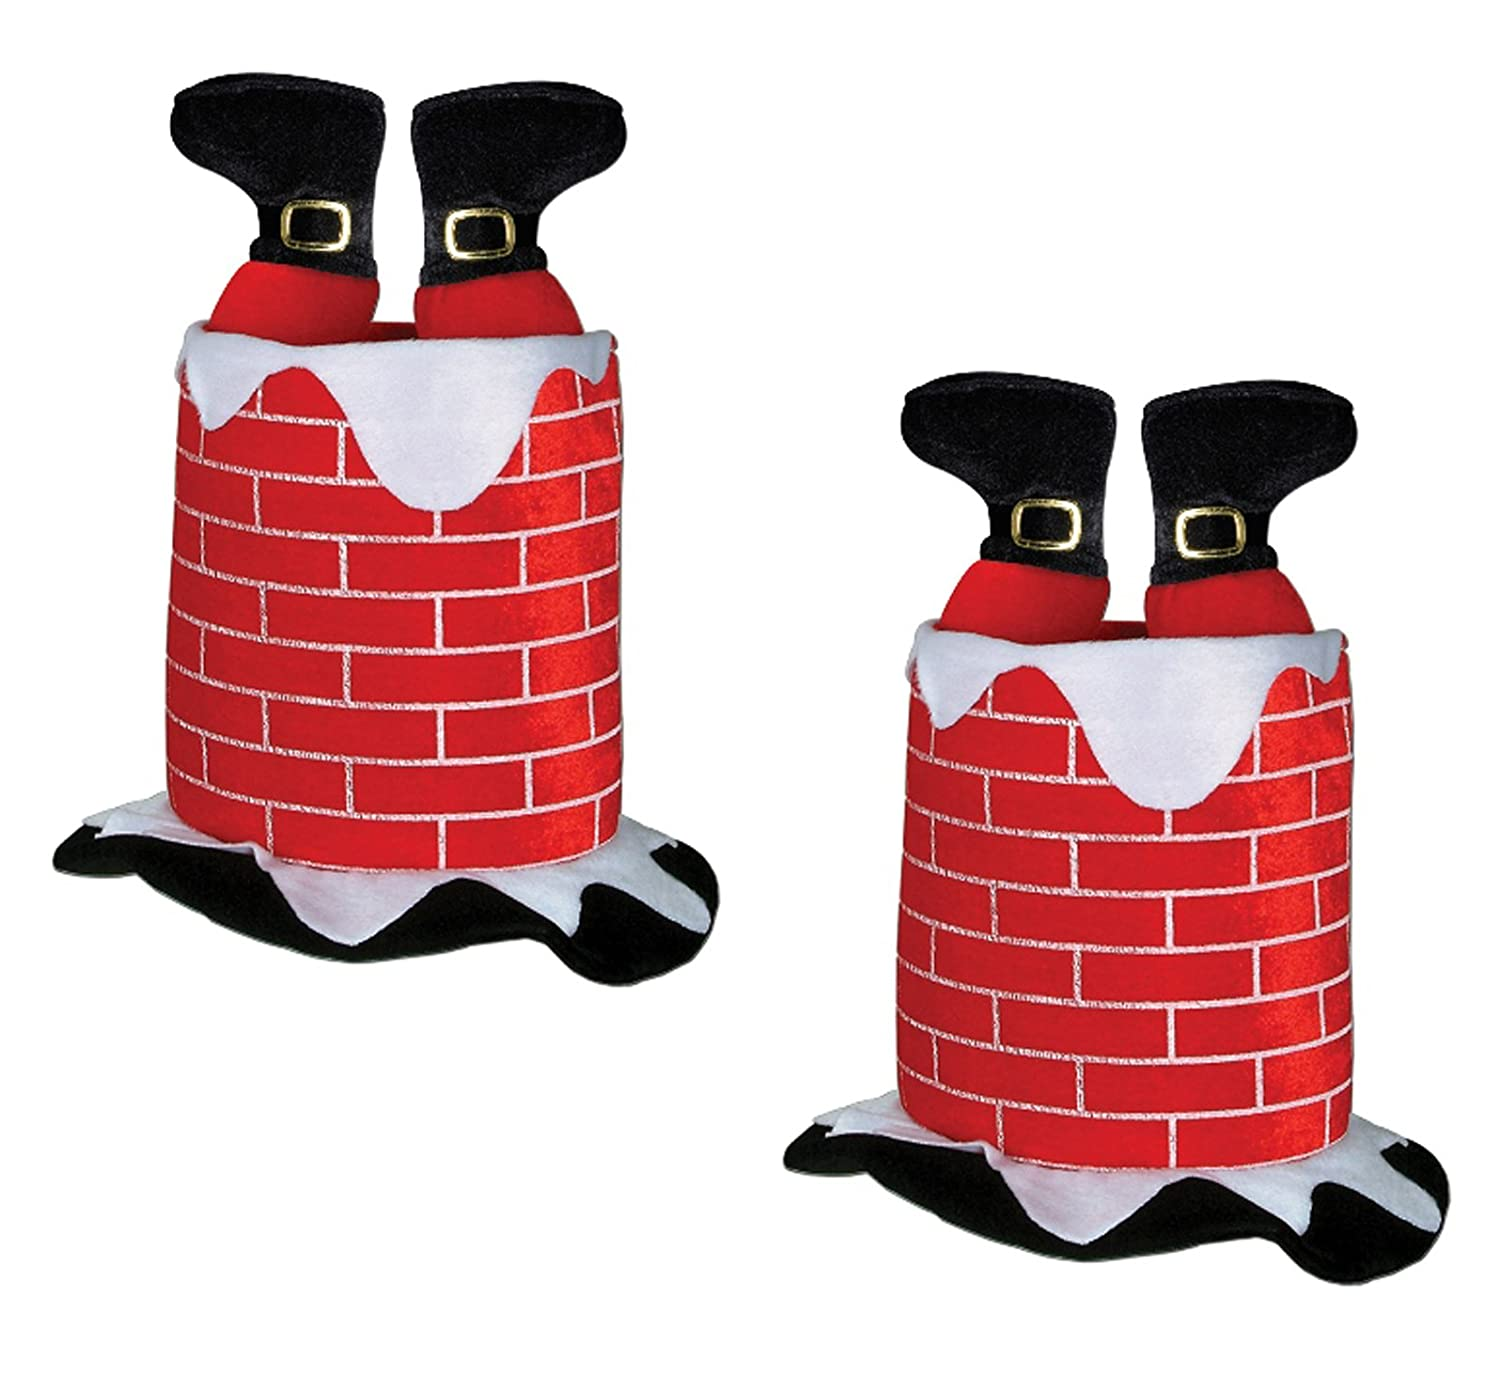 a46eac675db86 Amazon.com  Beistle 1-Pack Plush Santa Chimney Hat  Costume Headwear And  Hats  Kitchen   Dining